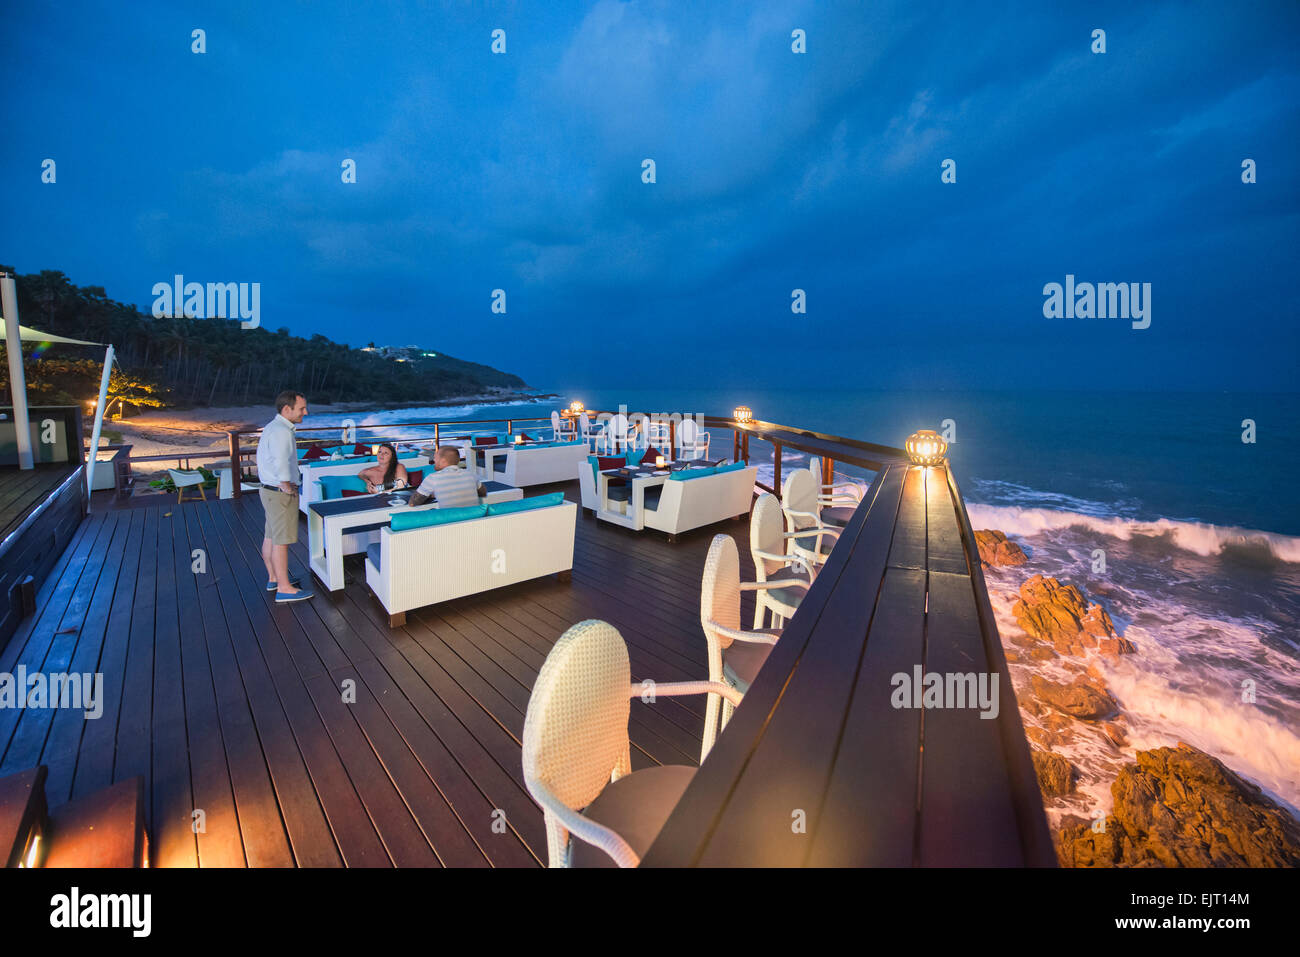 Romantic restaurant over the sea, Koh Samui, Thailand - Stock Image